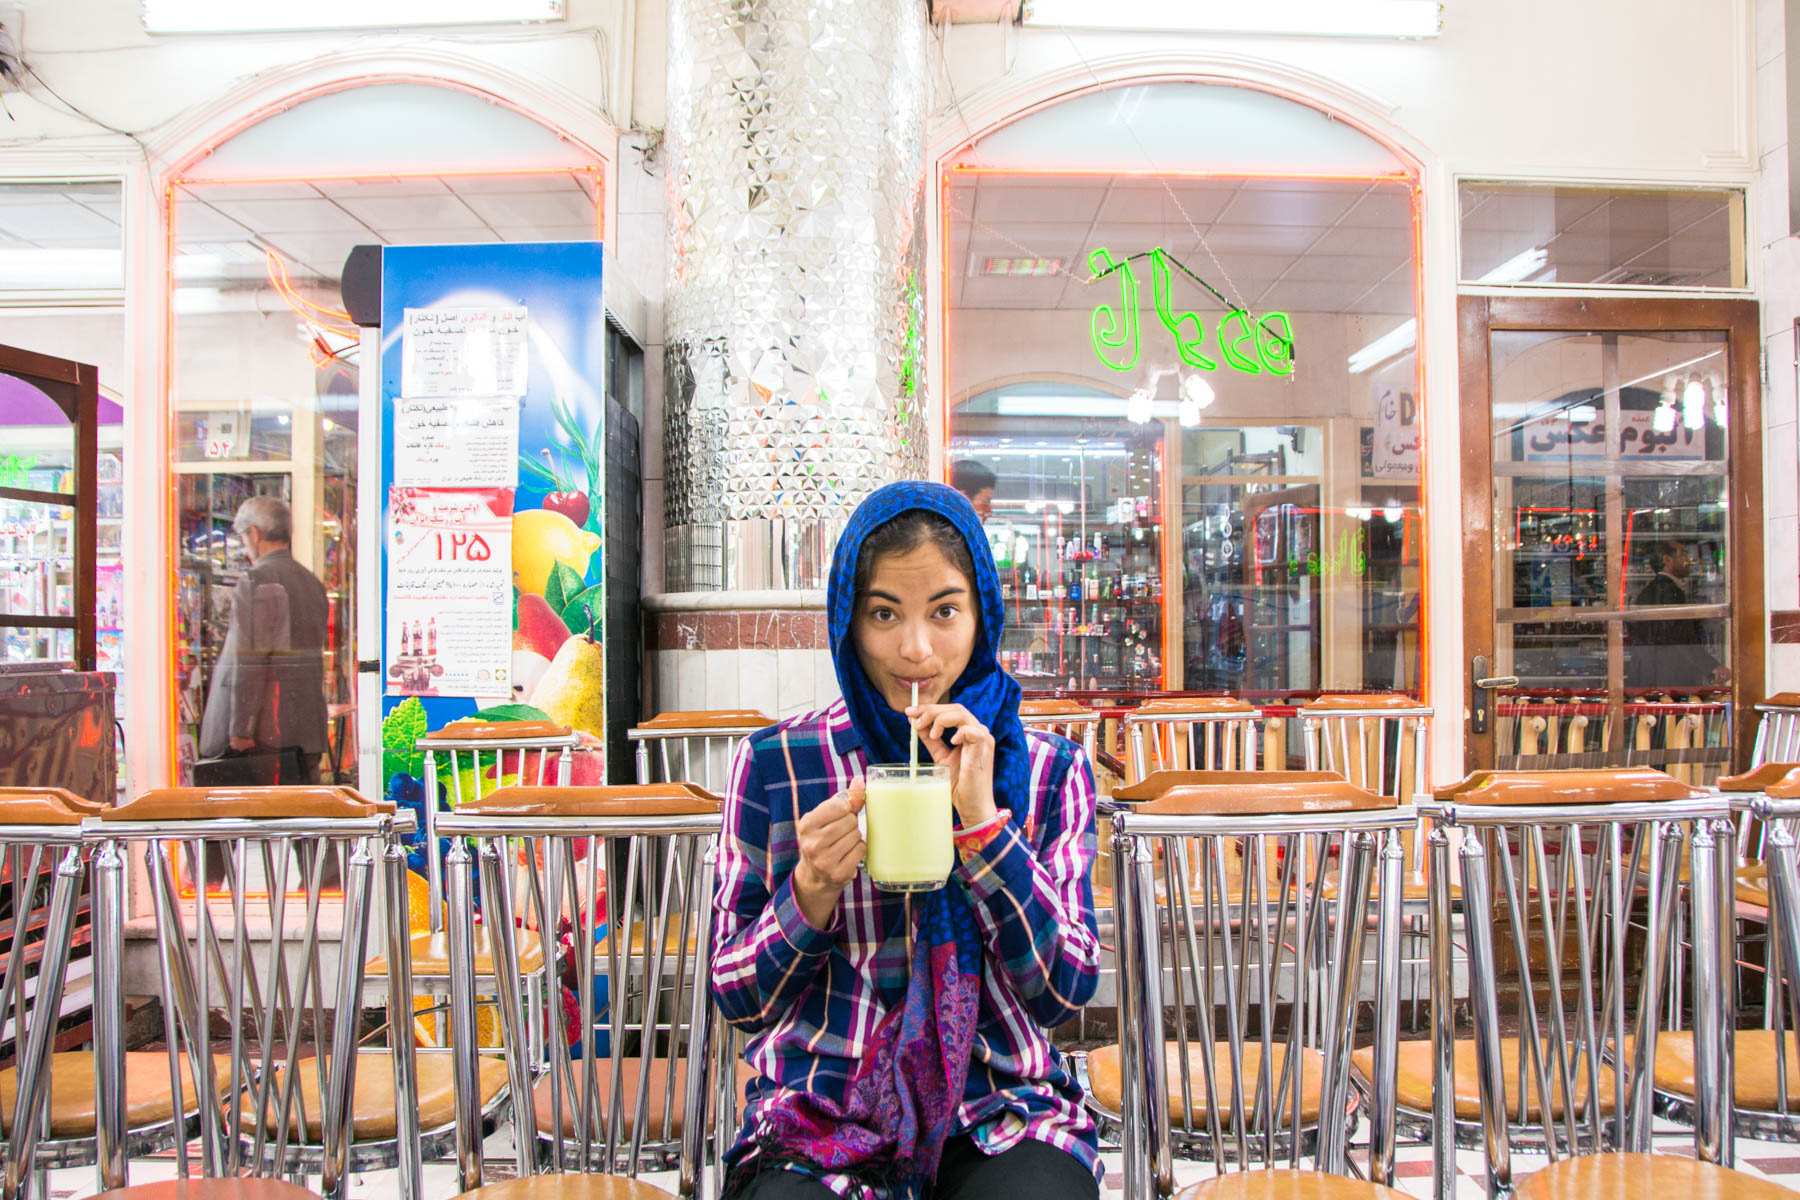 Sipping melon smoothies in Tabriz, Iran.